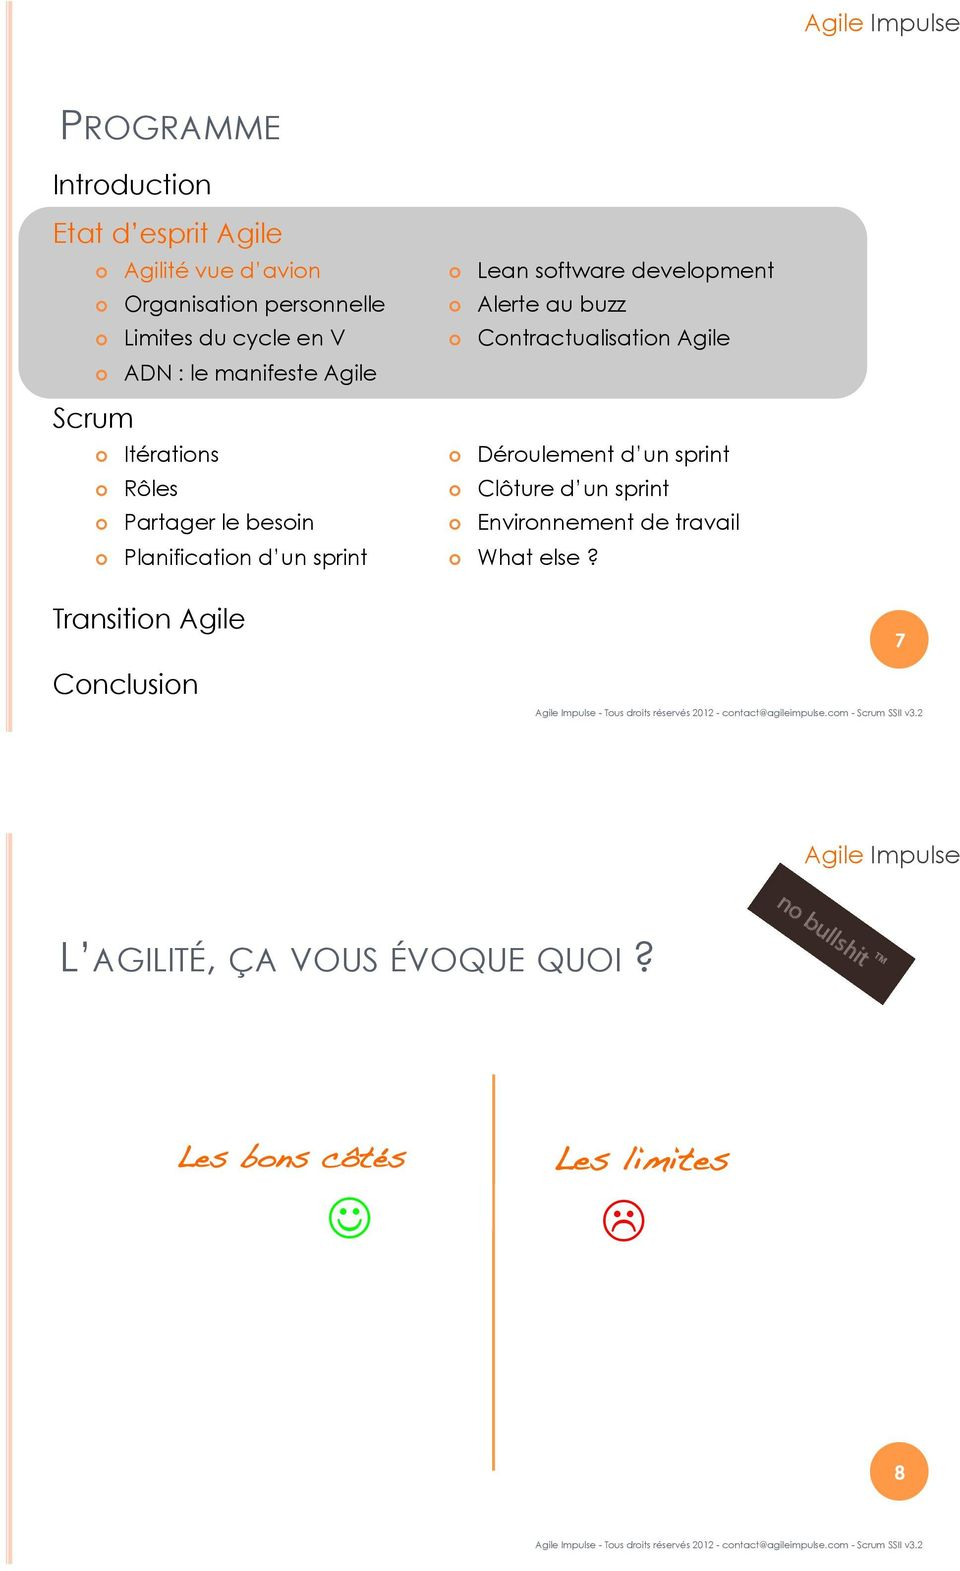 Lean software development! Alerte au buzz! Contractualisation Agile! Déroulement d un sprint! Clôture d un sprint!